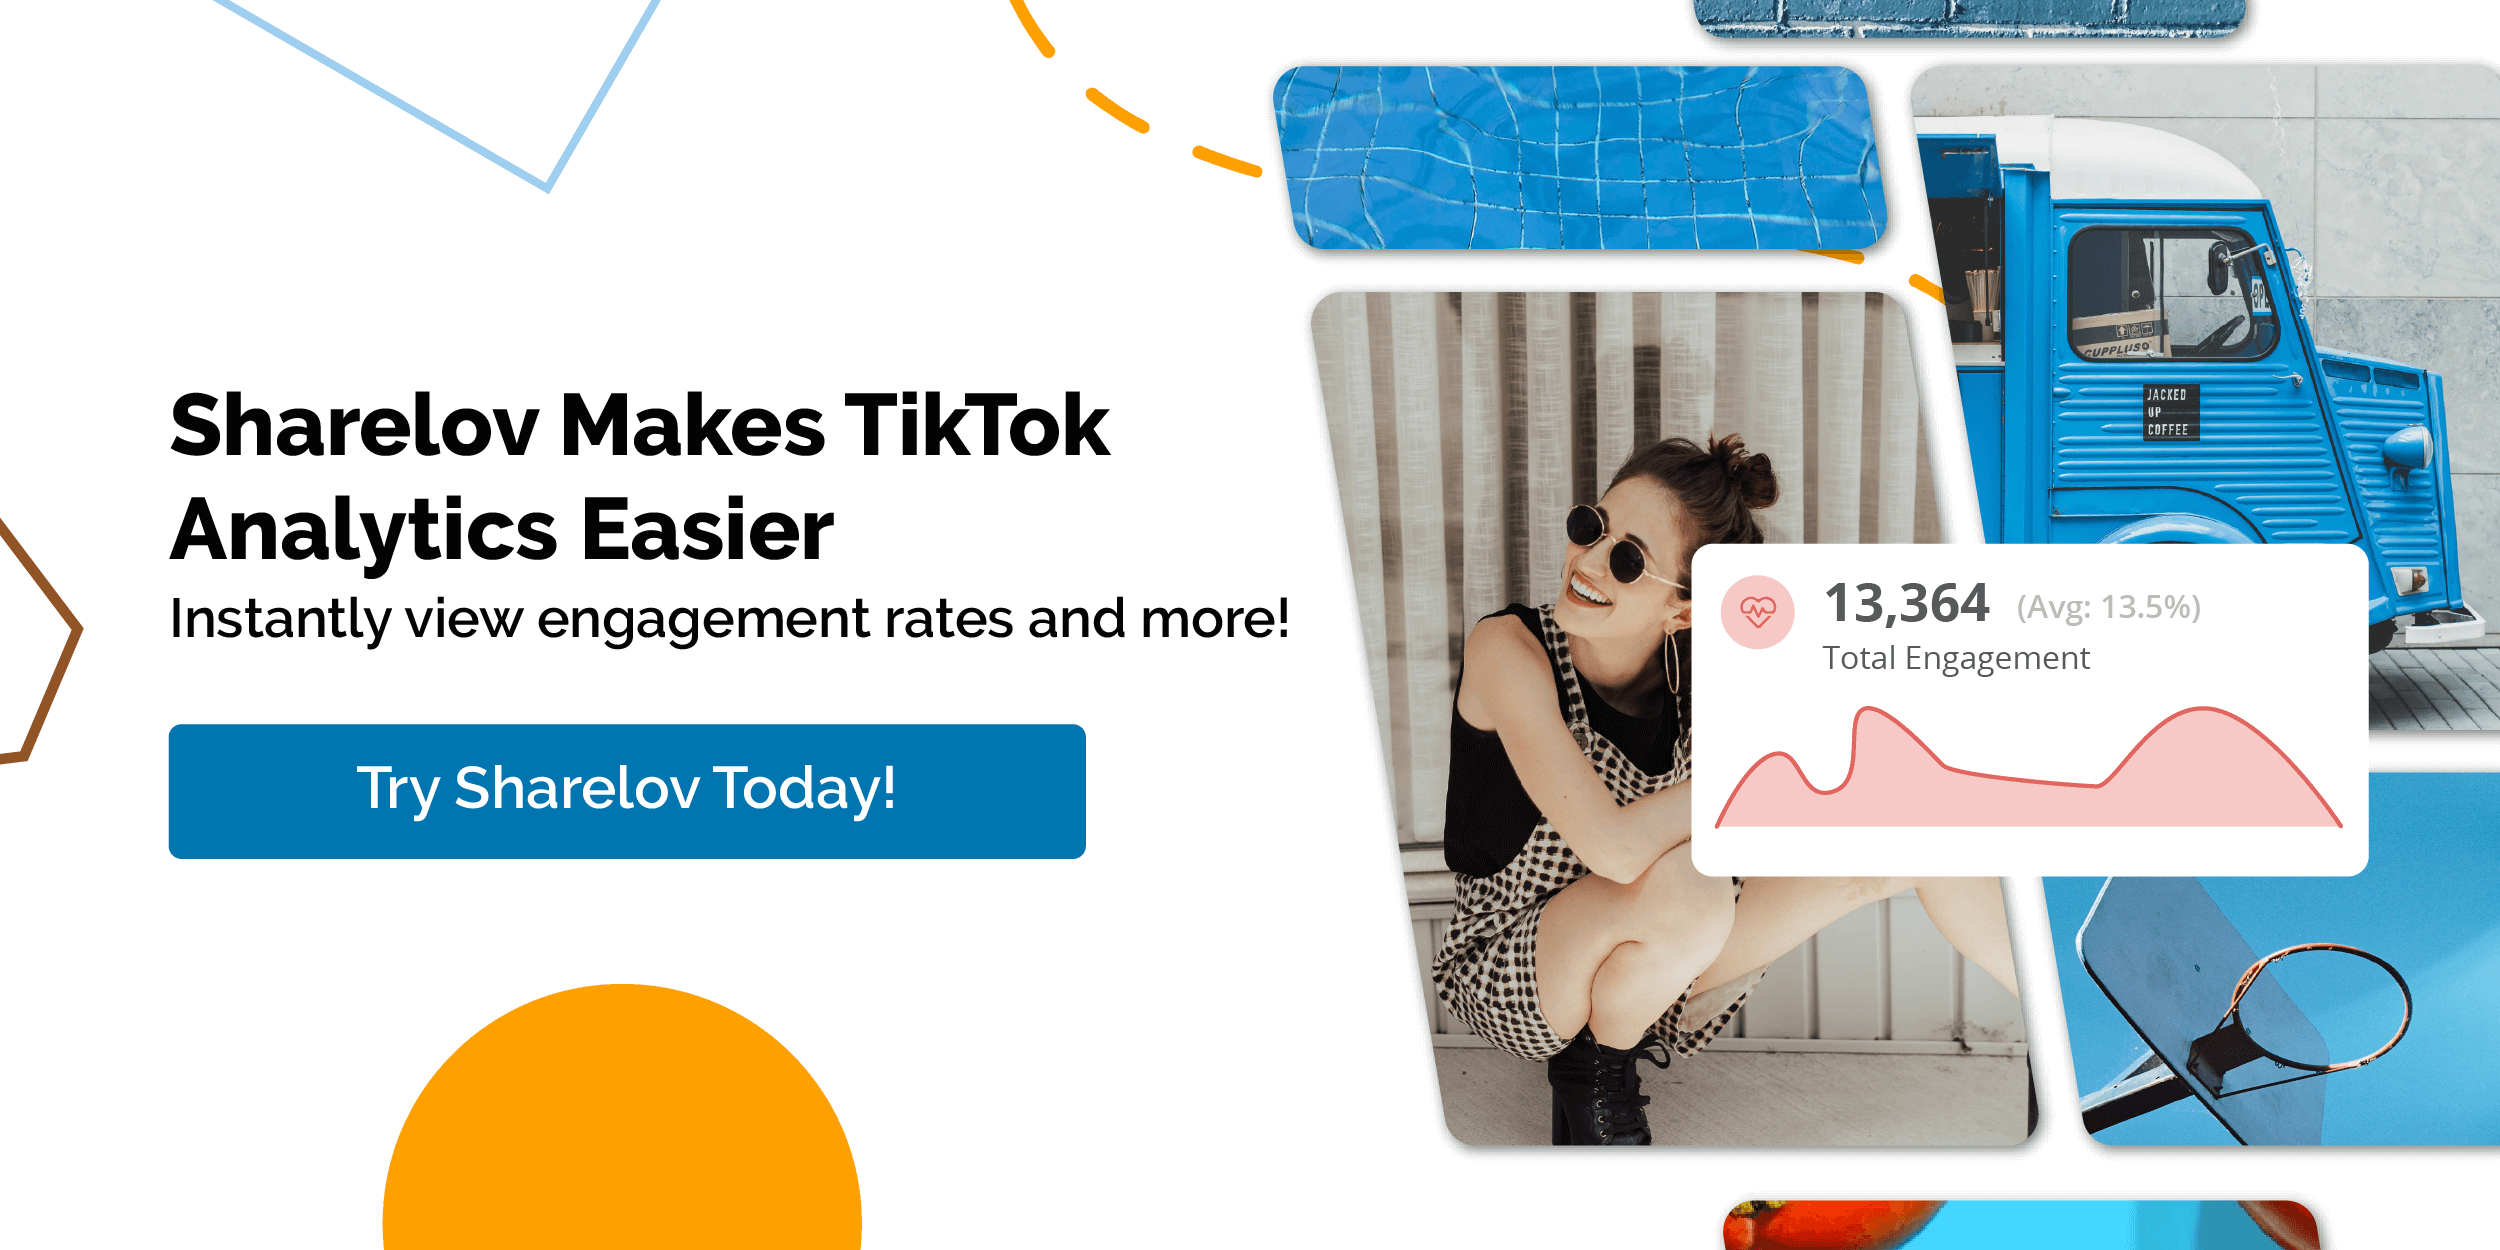 Sharelov Makes TikTok Analytics Easier Instantly view engagement rates and more